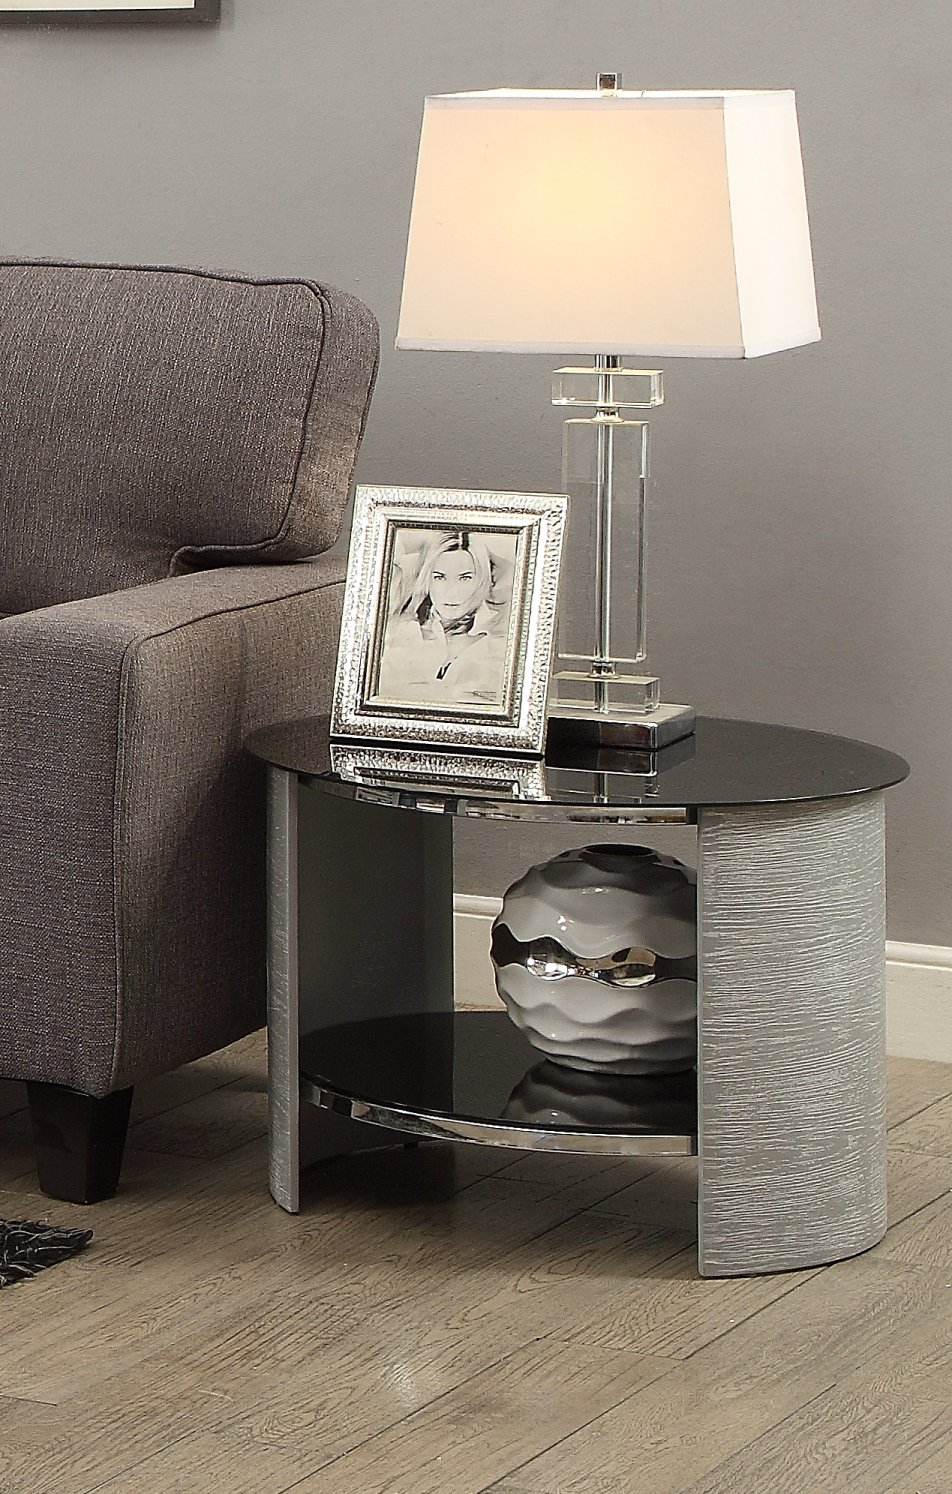 Jual San Marino Grey Ash U0026 Black Glass Curved Wood Round Lamp Table.